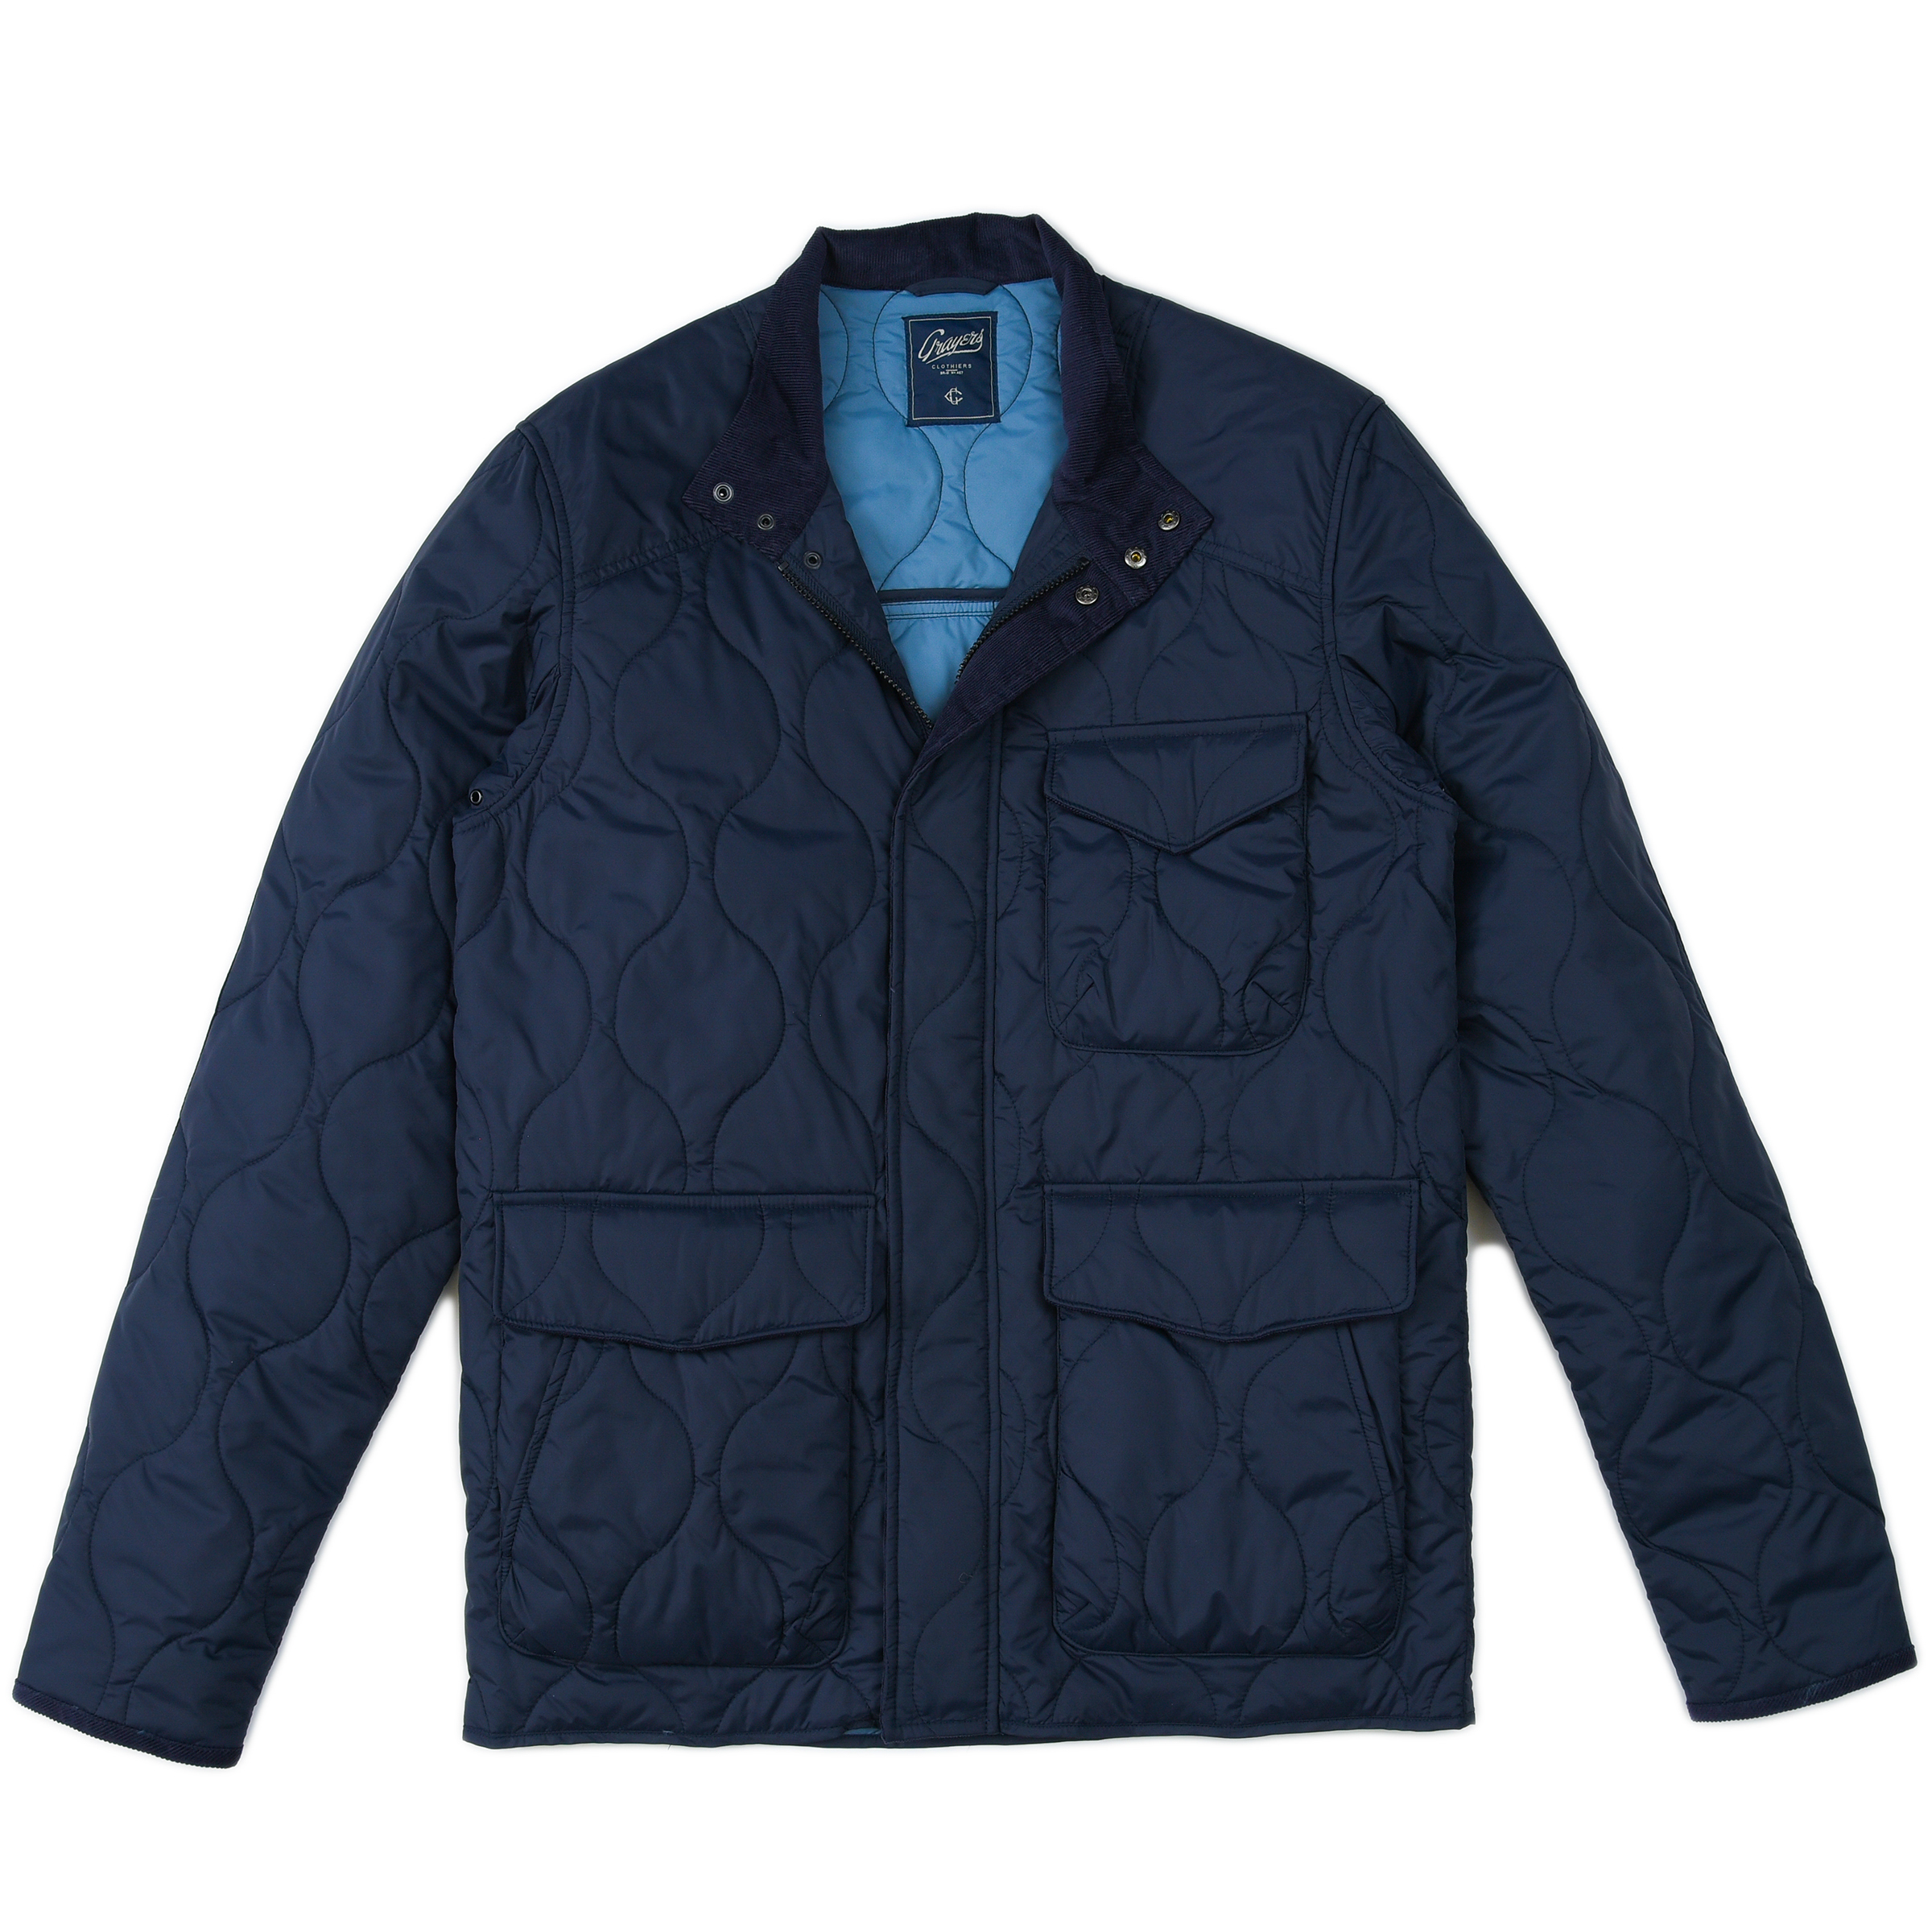 J016117NVY_Reston Quilted Jacket_RM7_0841e.jpg